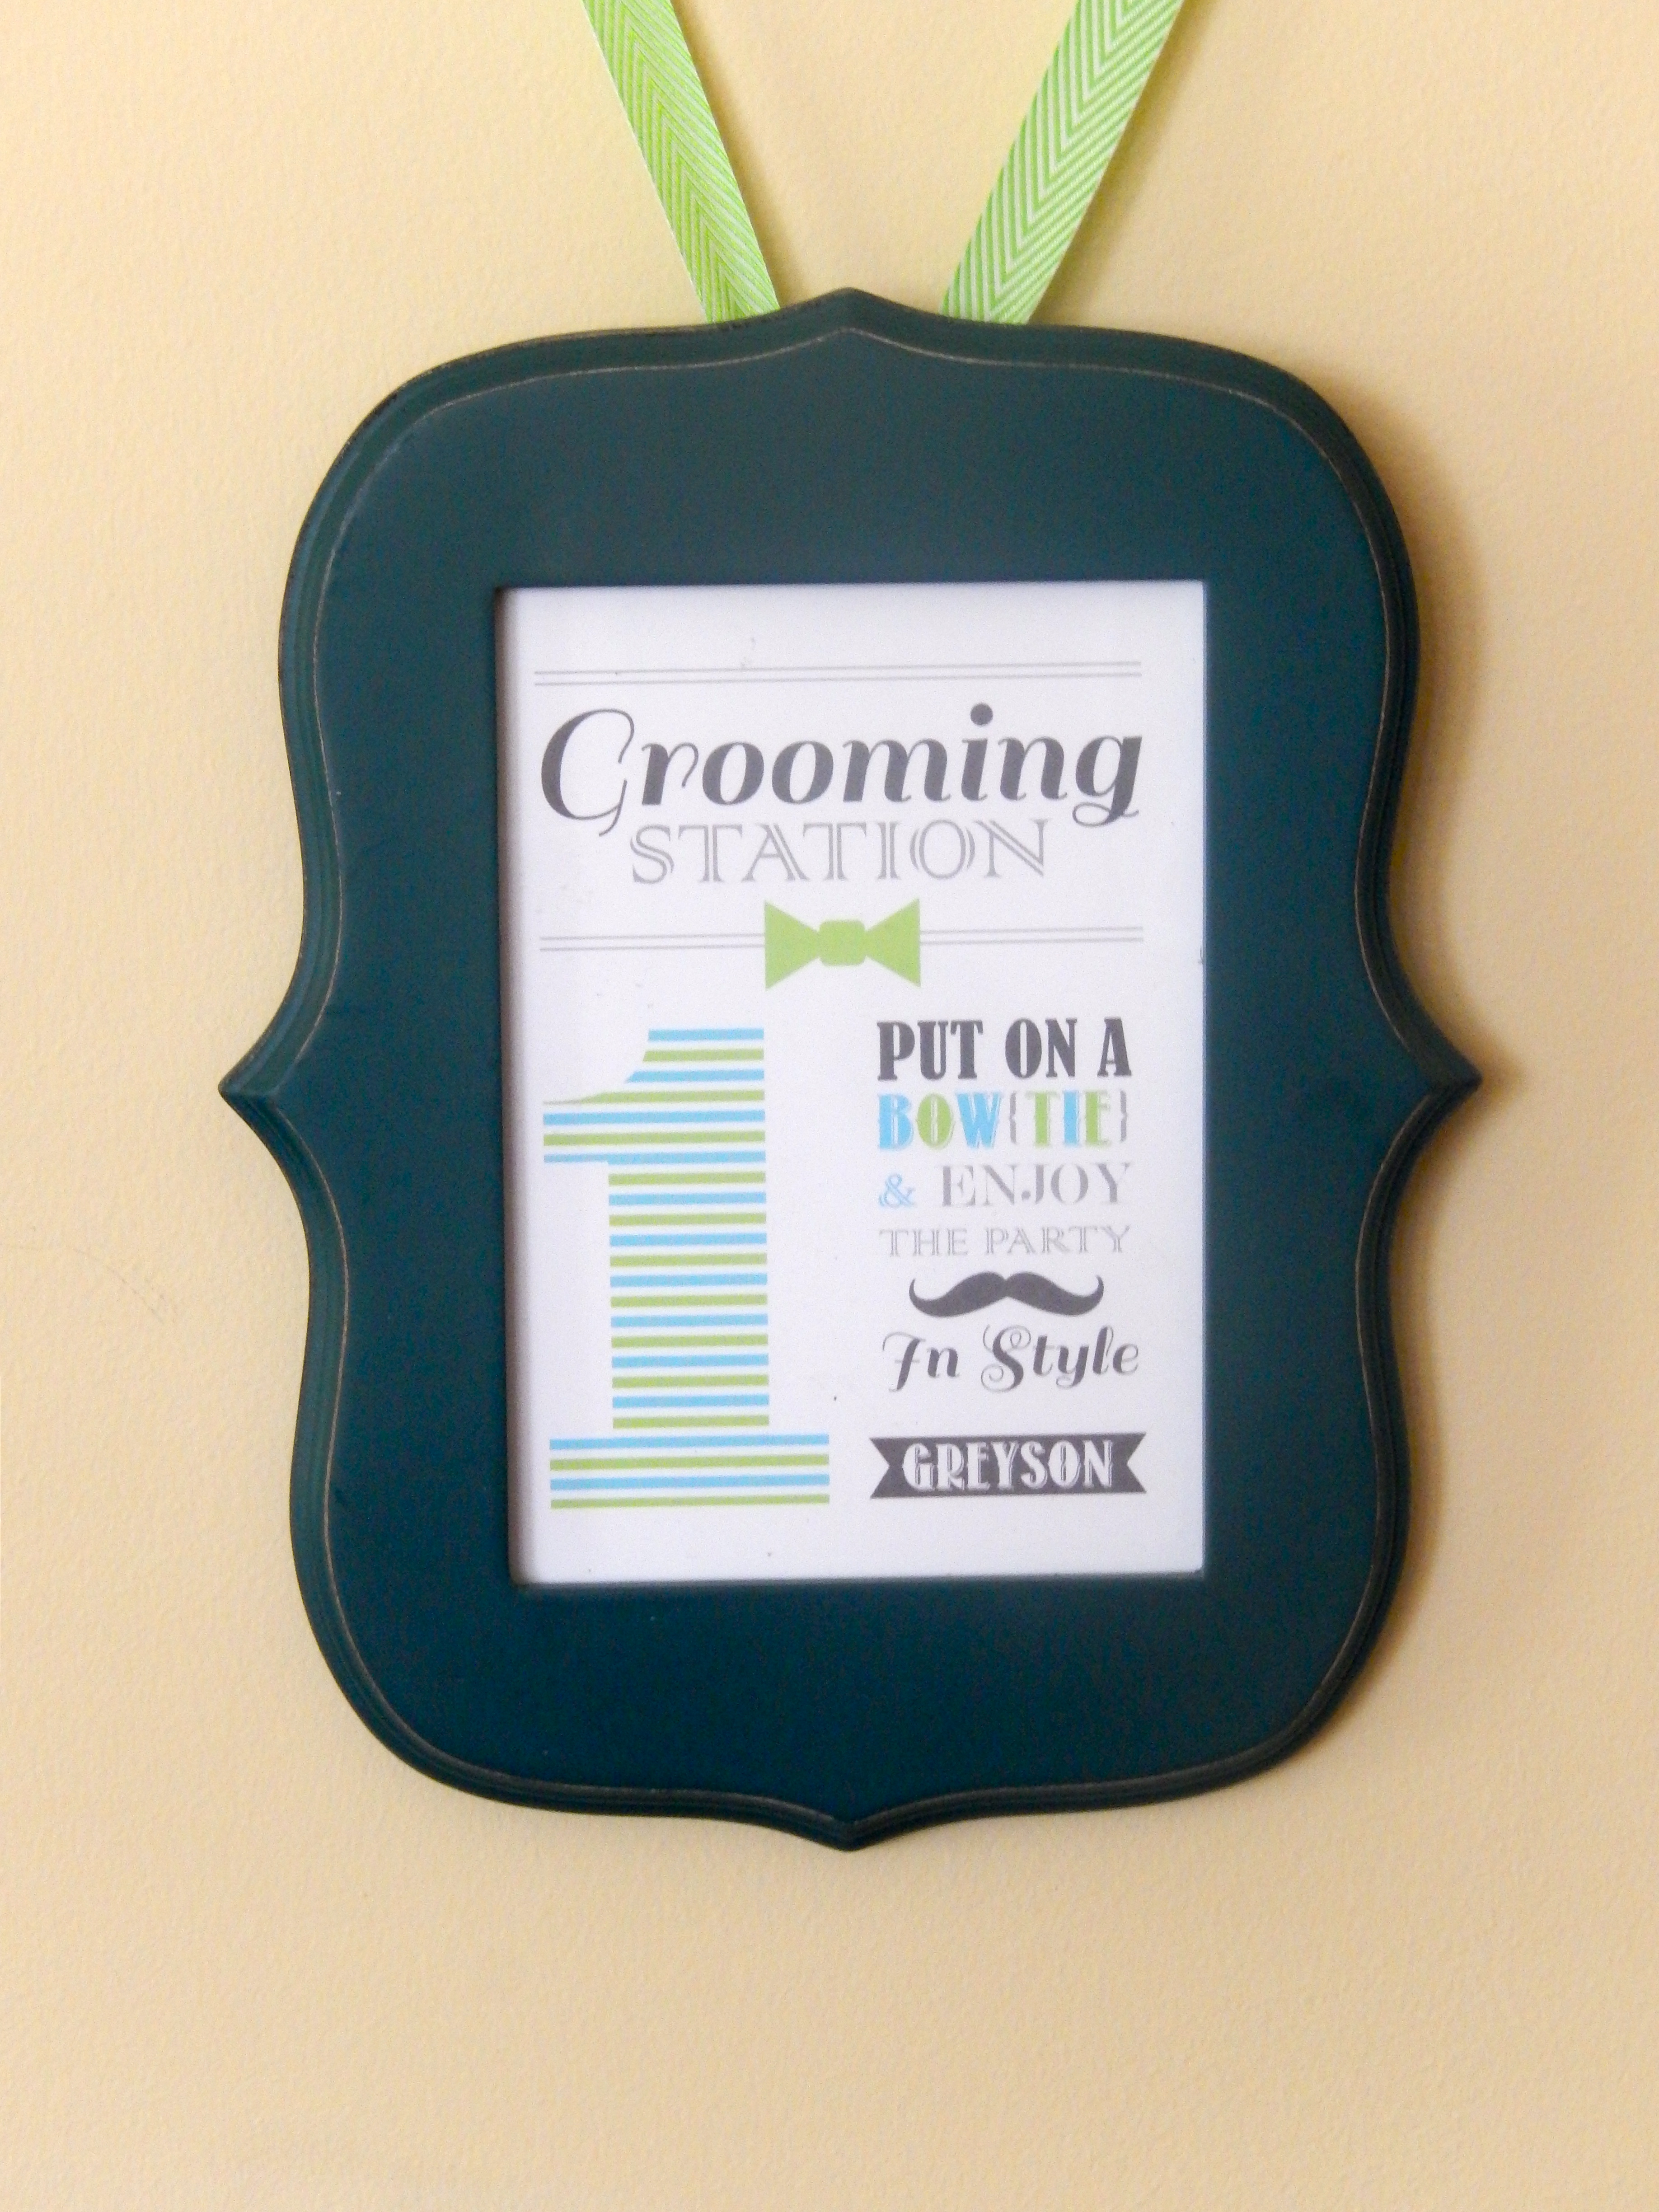 Grooming Station Sign